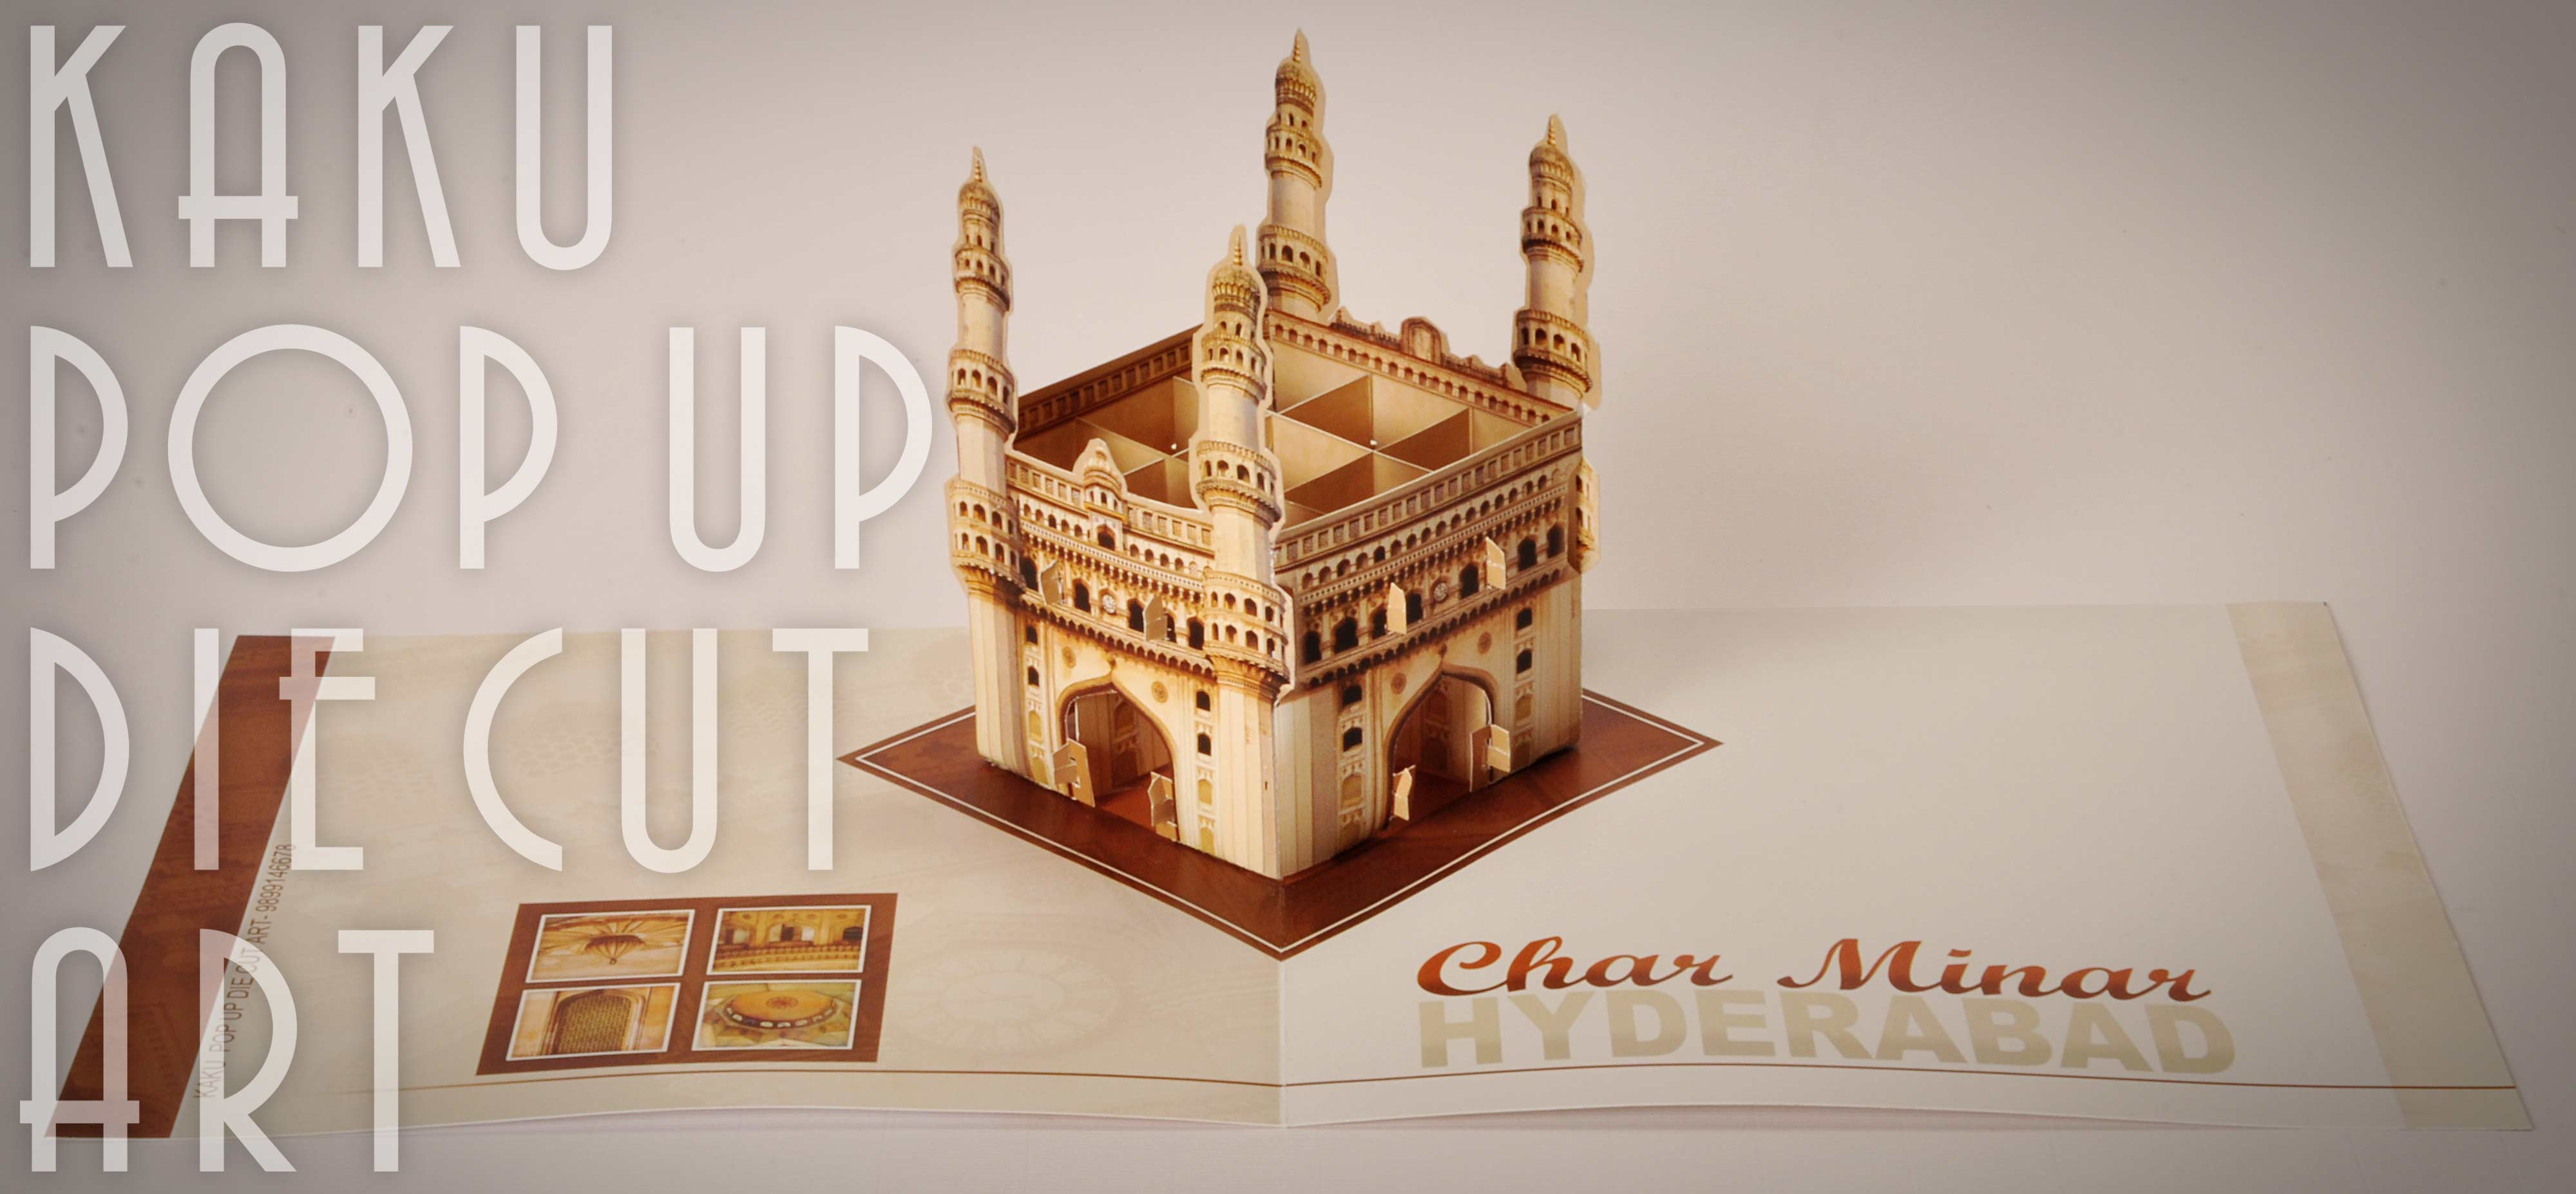 CHARMINAR HYDERABAD | POP UP BROCHURE